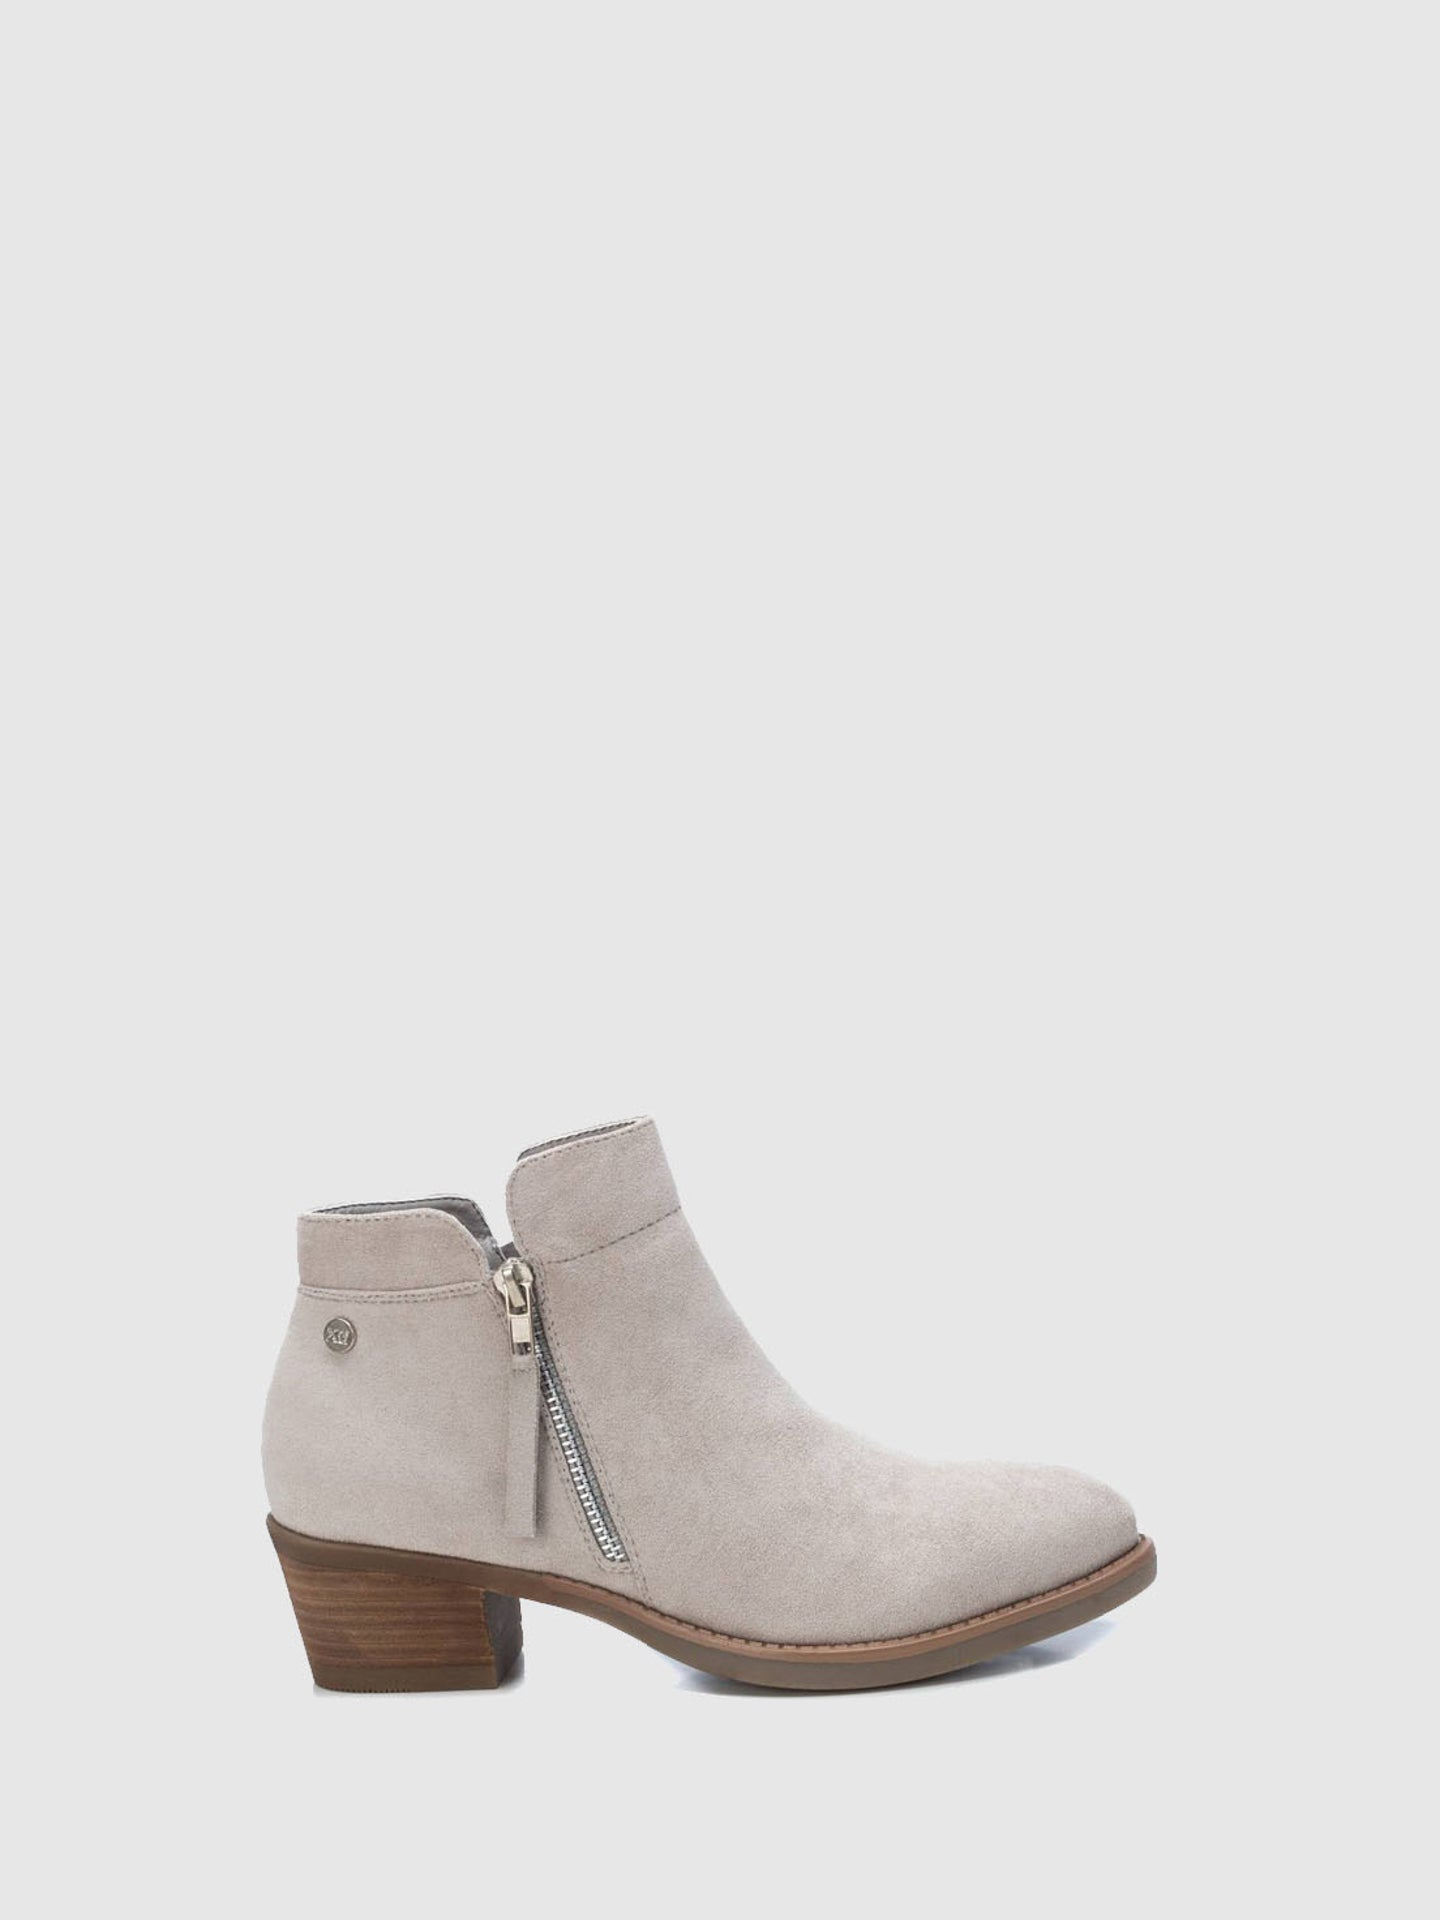 XTI White Zip Up Ankle Boots